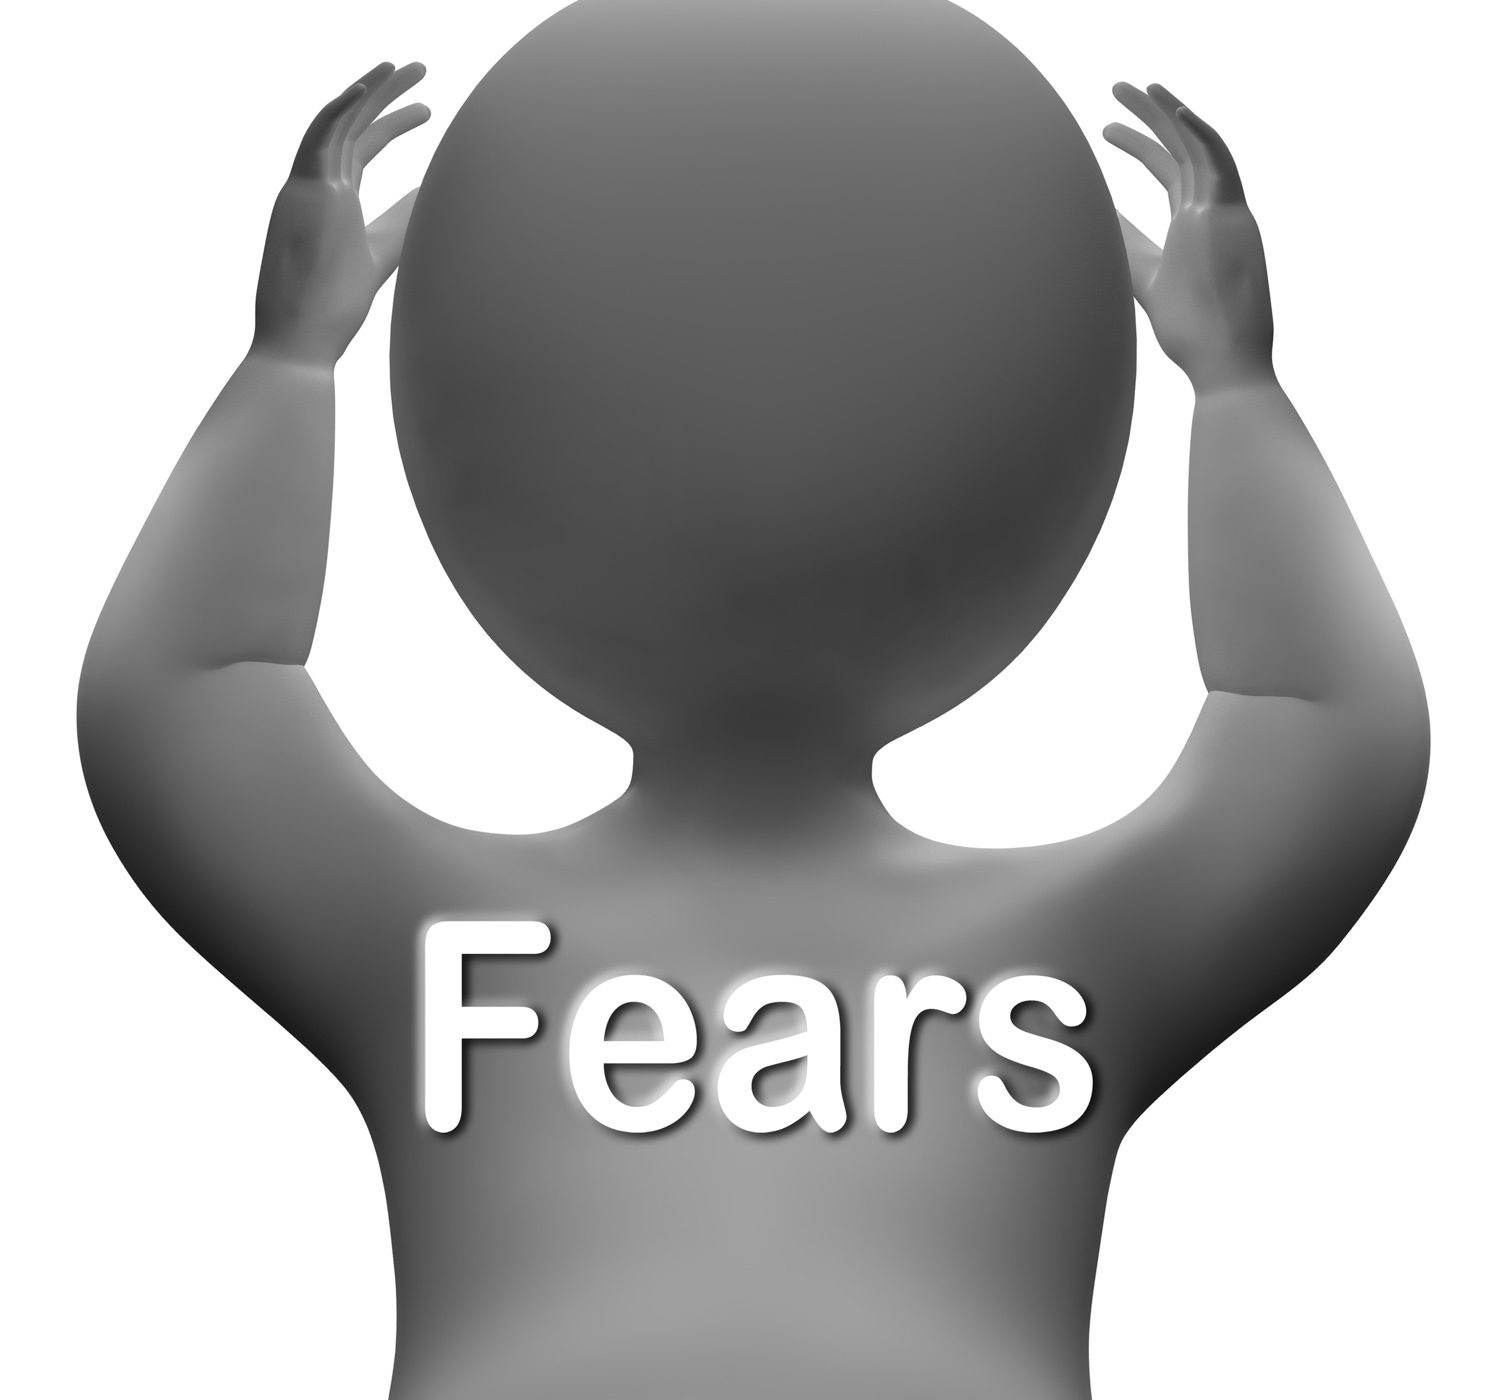 Fears character means worries anxieties and concerns photo